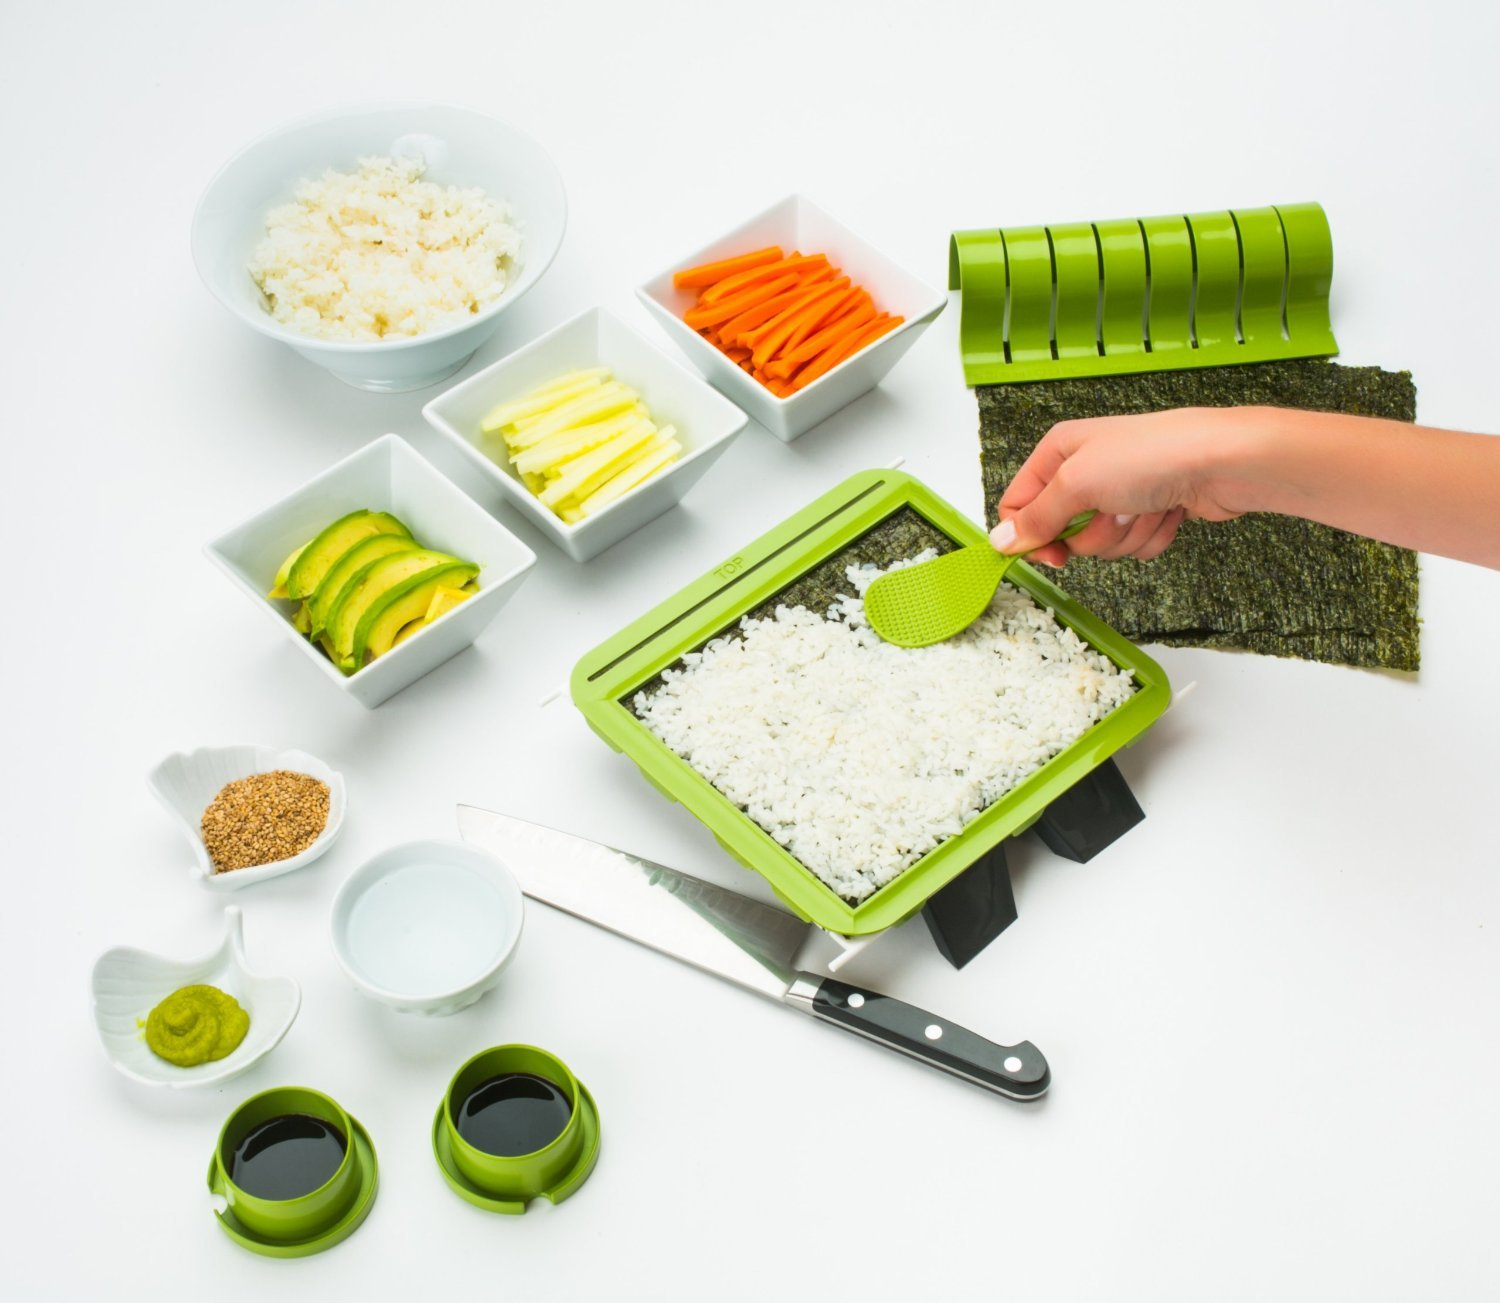 SushiQuik Super Easy Making Kit Complete With Roll Cutter, Rice Paddle, Pre-Measured Rice Frame and How To Videos by SushiQuik